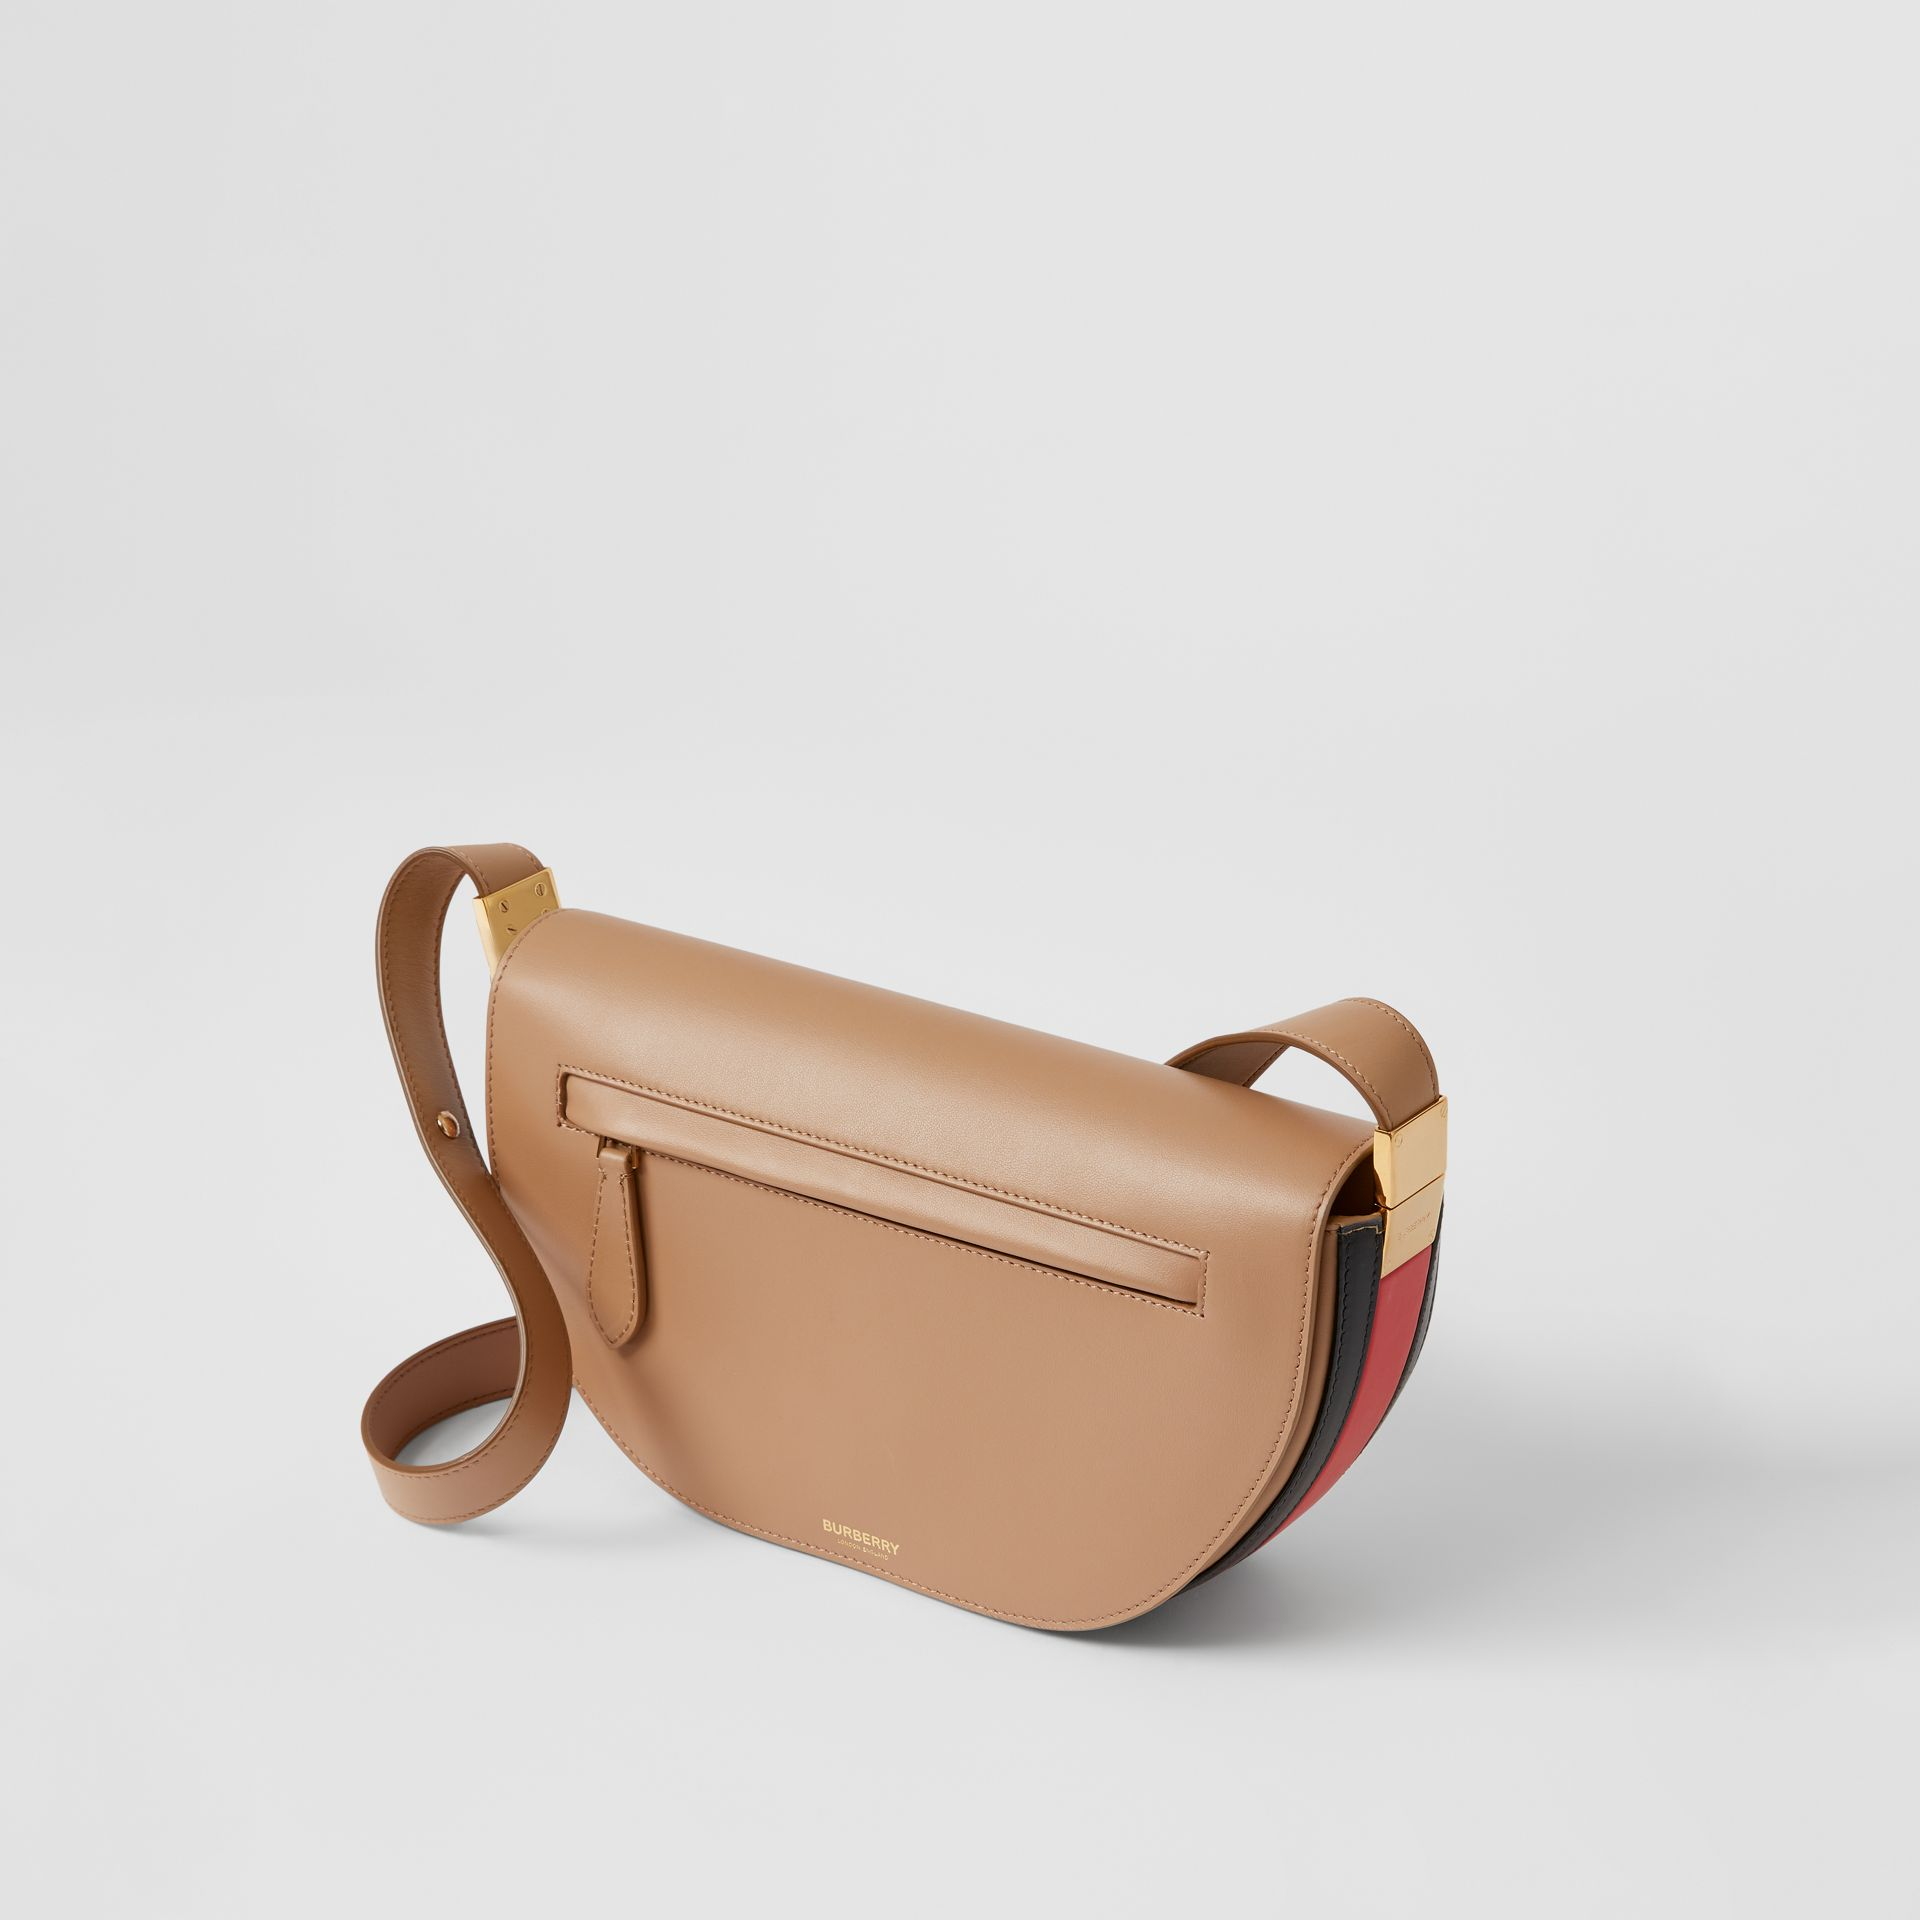 Small Leather Olympia Bag in Camel - Women | Burberry - gallery image 3